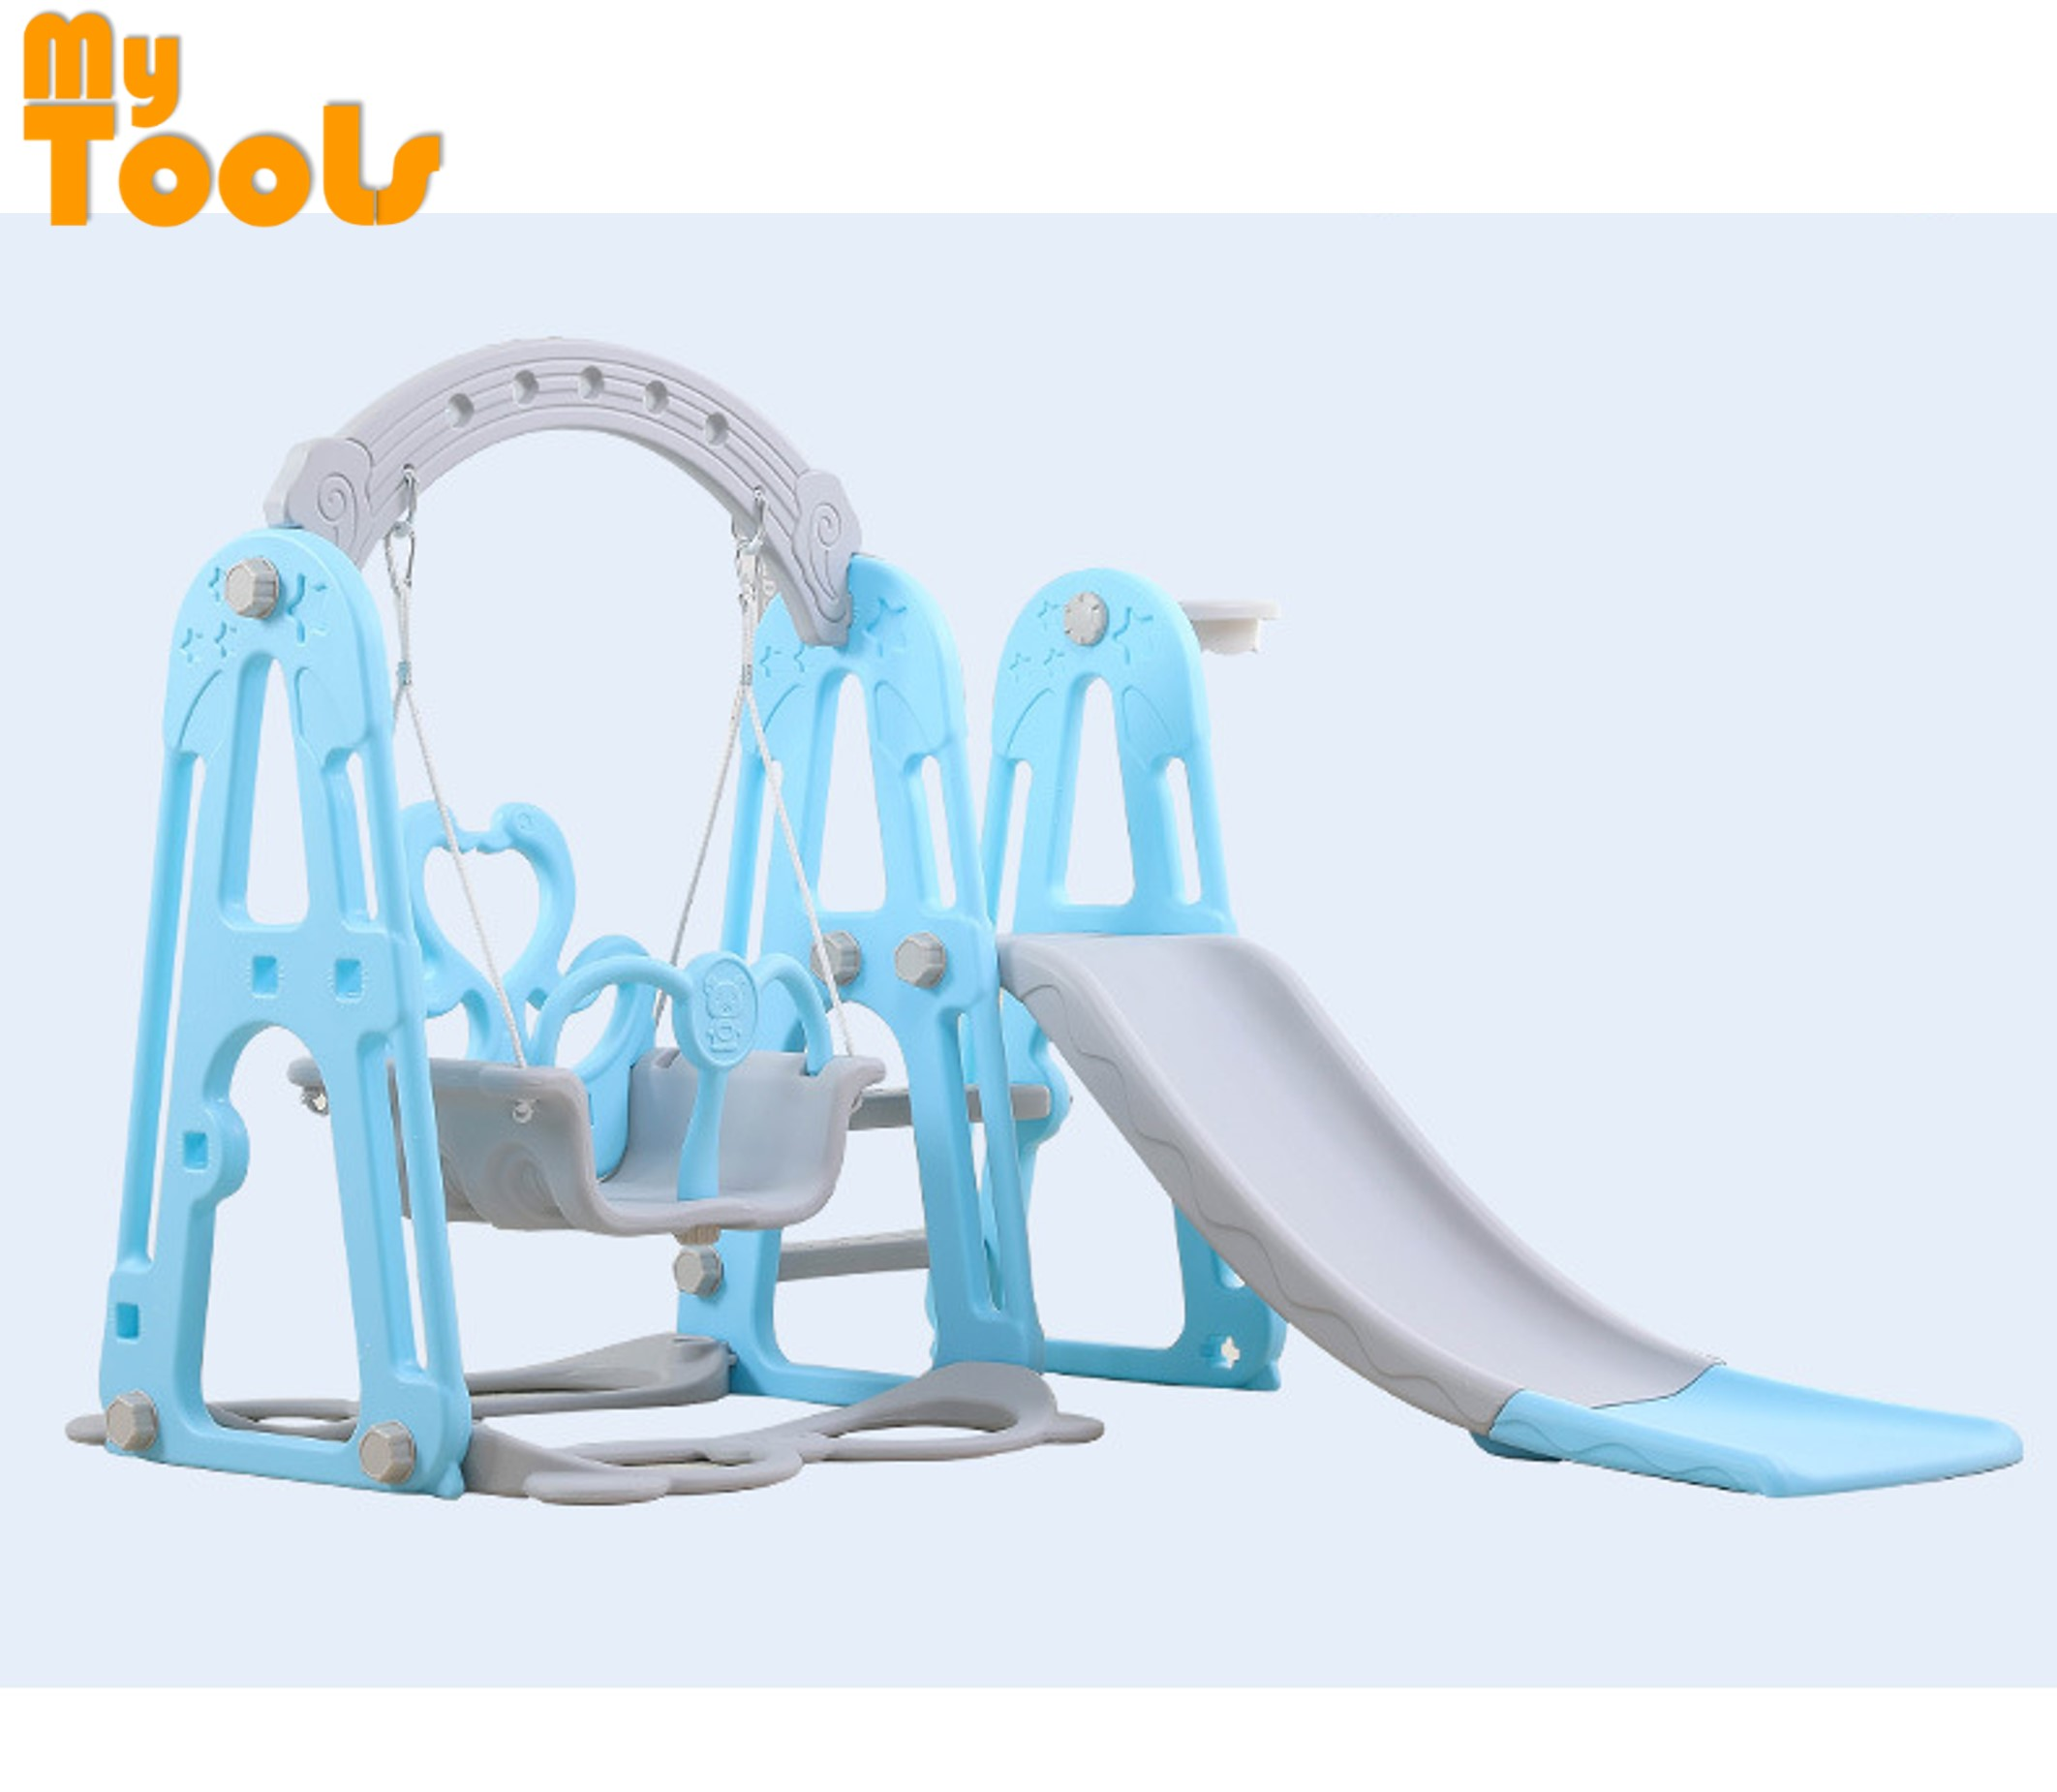 Mytools 3 IN 1 Swing Children Slide Kids Slide With Basketball Net Indoor Outdoor Colourful Mini Playground (BLUE)